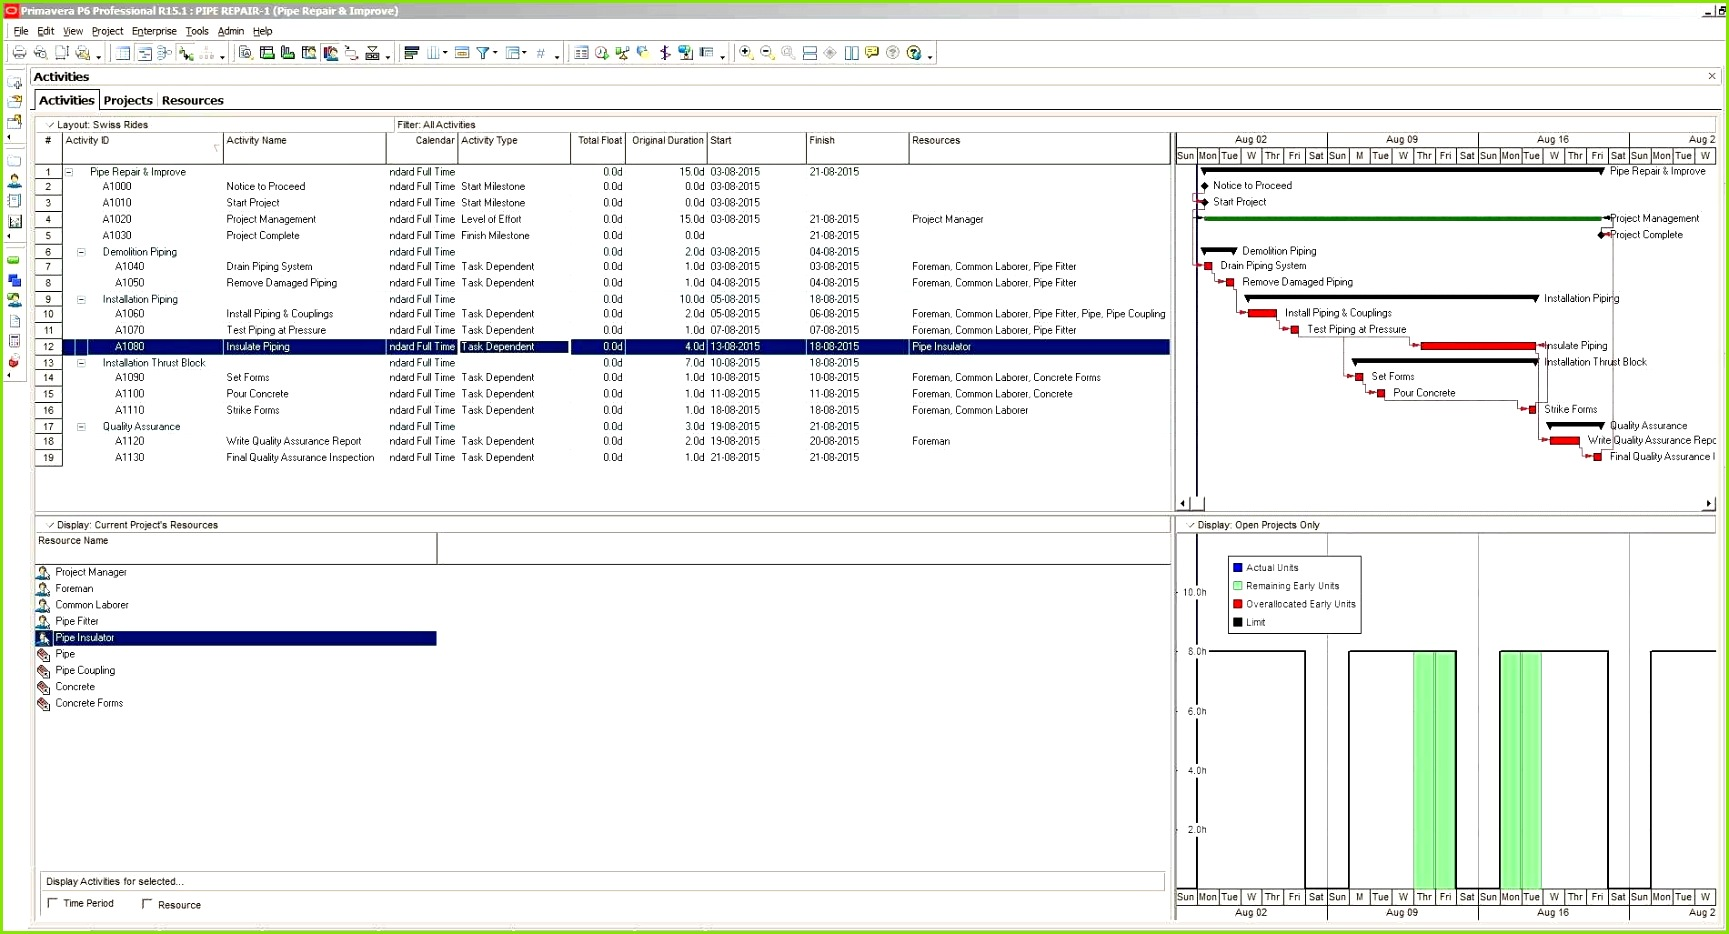 Audit Iso Controls Spreadsheet Awesome 50 Luxury Excel Spreadsheet for Restaurant Inventory Documents